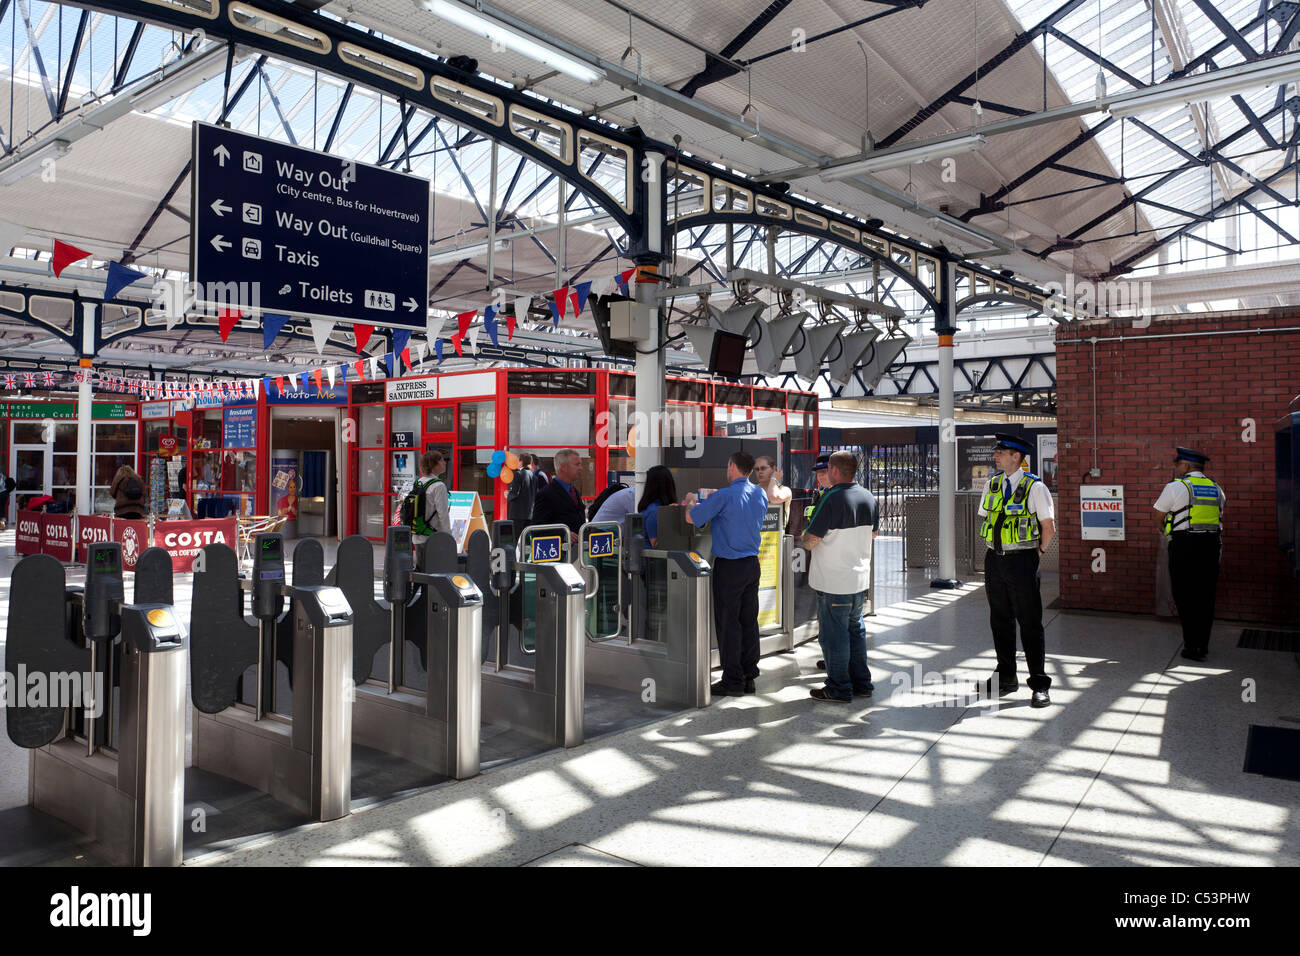 ticket barrier at Portsmouth Railway station - Stock Image